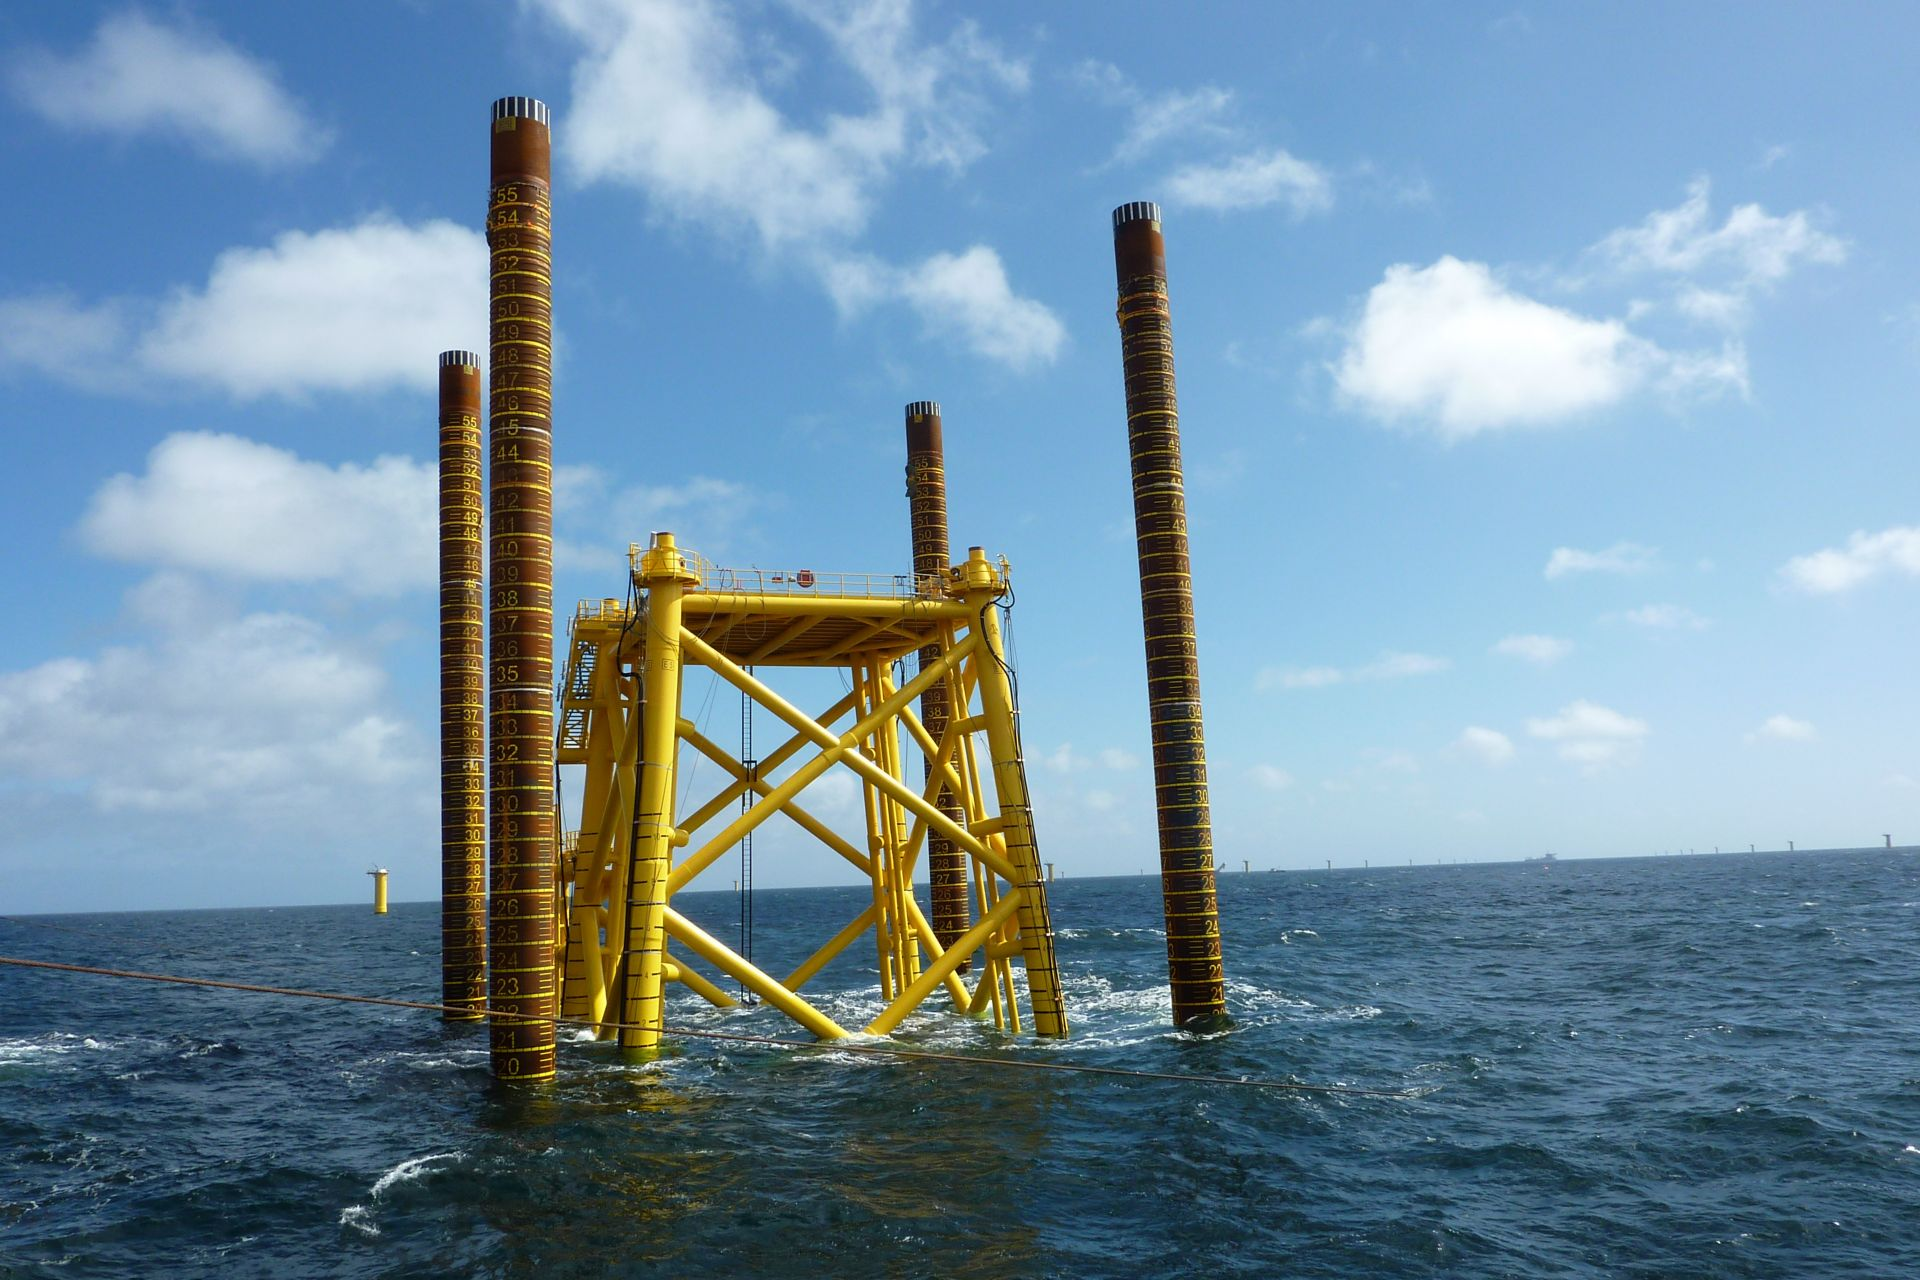 Grouting 4 legged offshore substation structure in the German sector of the North Sore